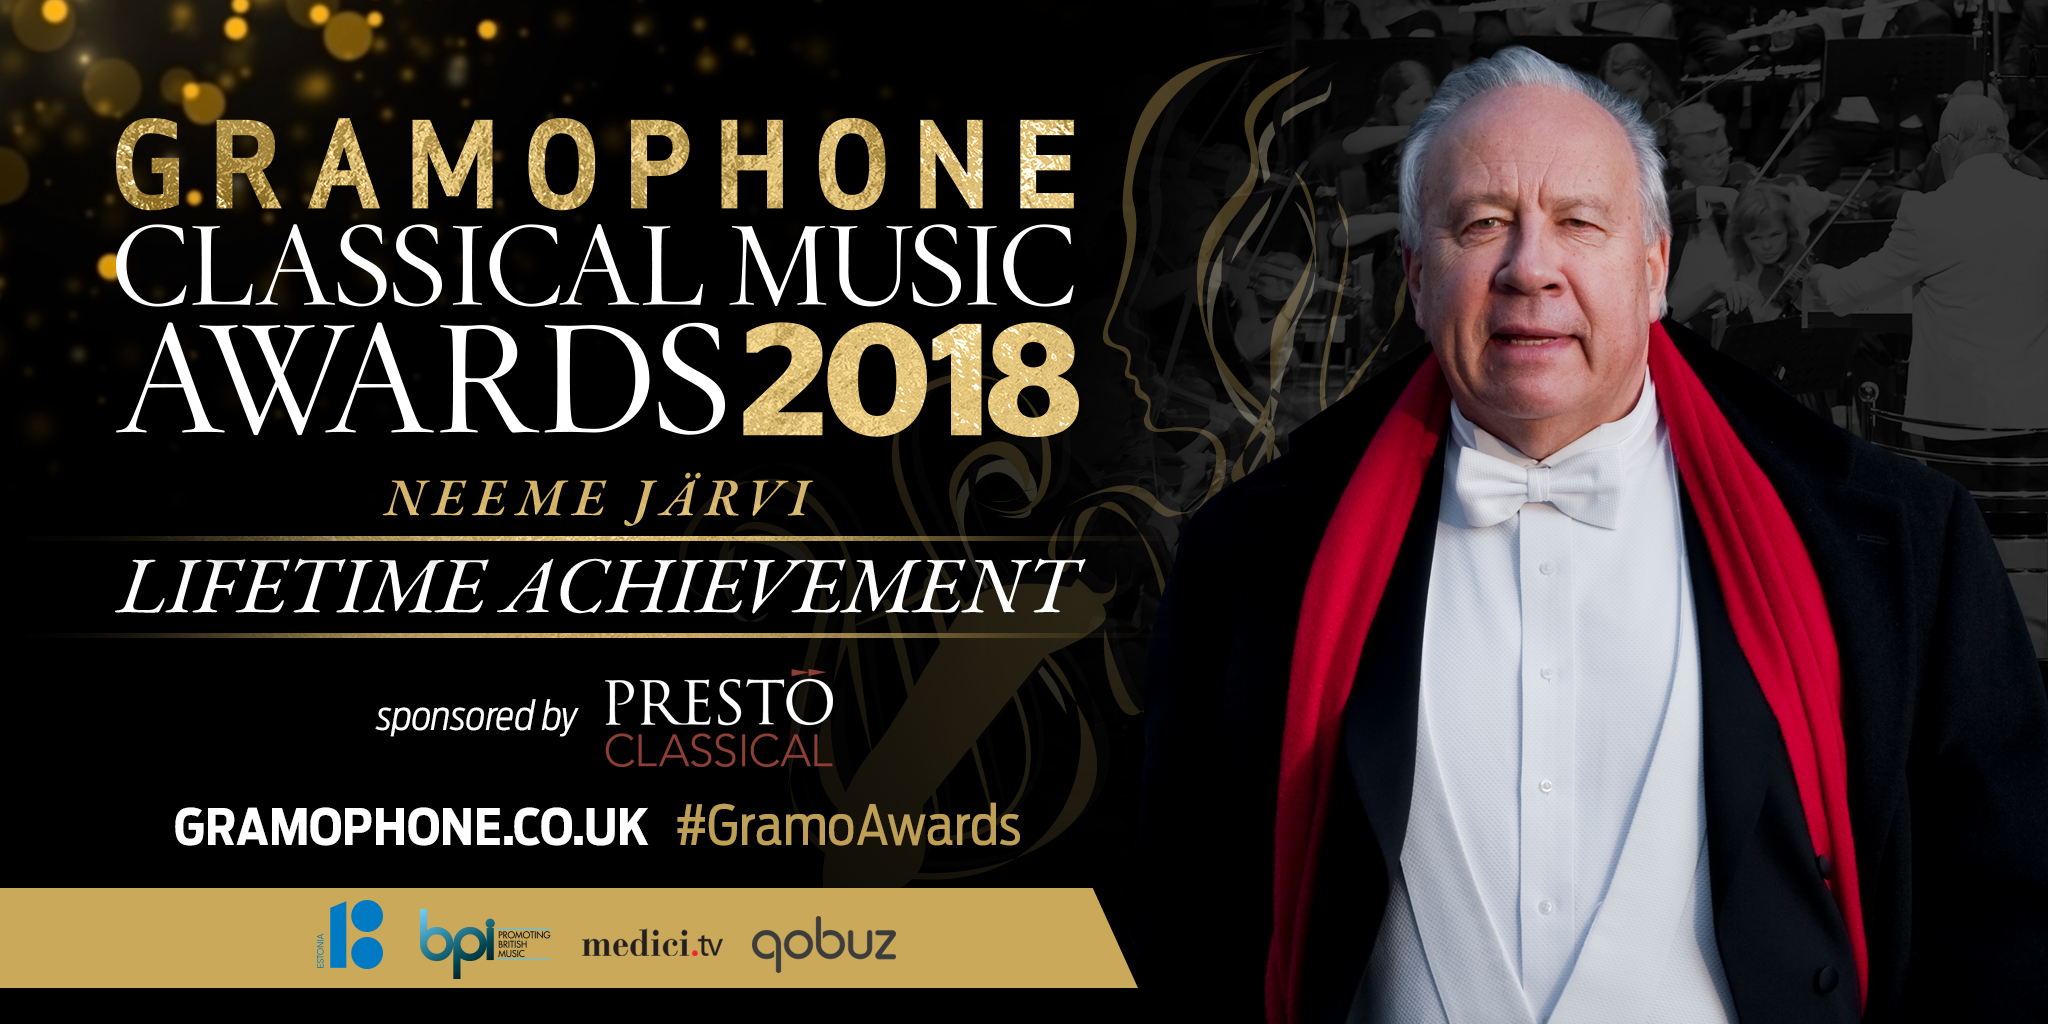 lifetimeachievement_specialawards2018_gramophone